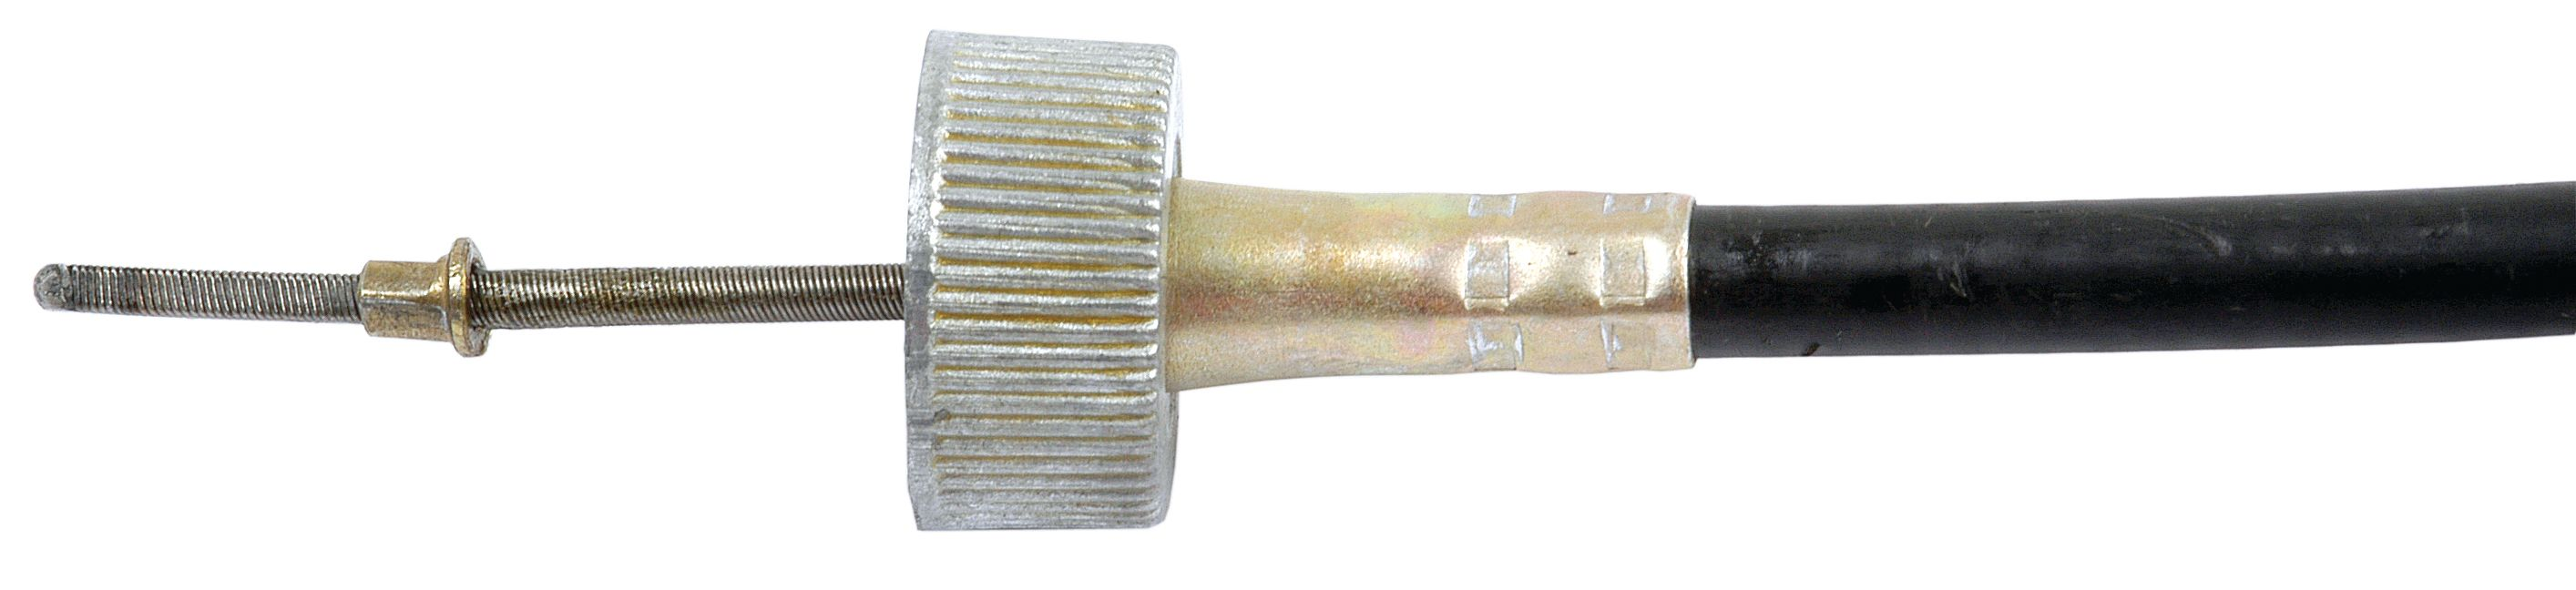 FORD CABLE-TACHO DRIVE (1225MM) 65561